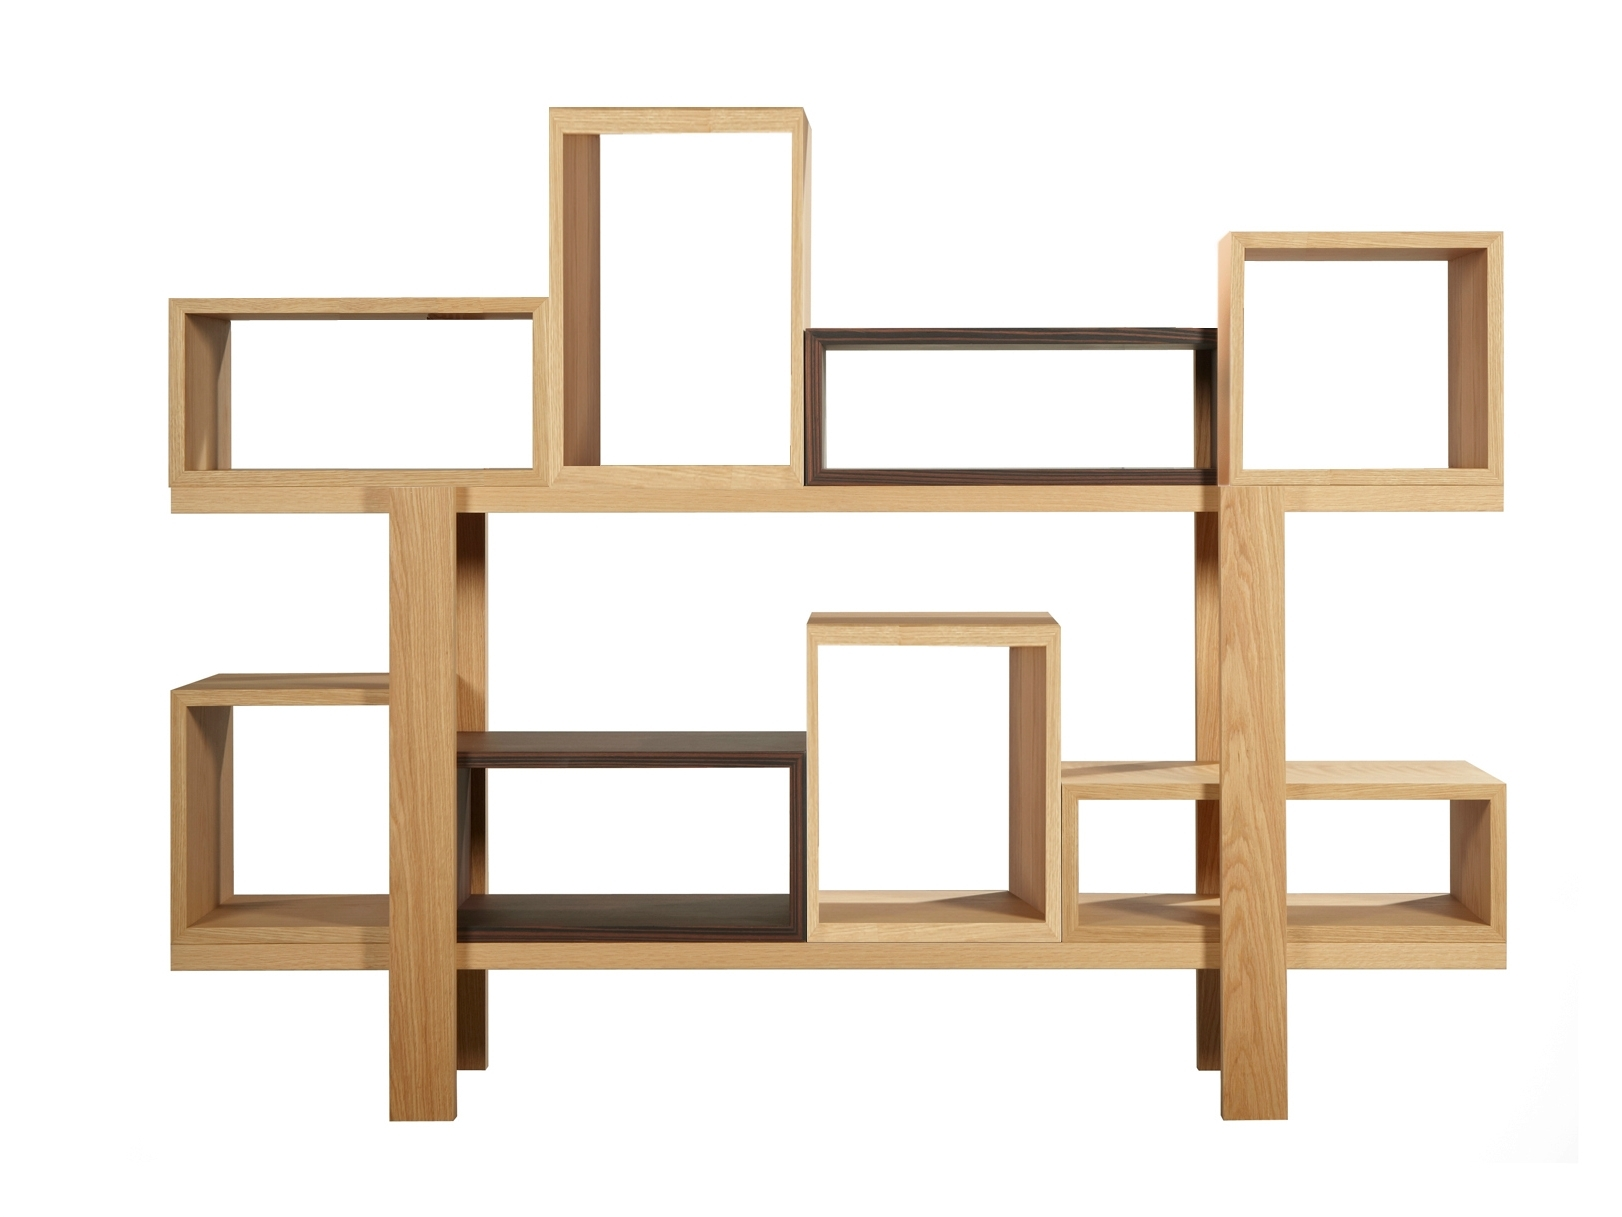 Double Sided Bookcases Regarding Popular Bookcases Ideas: Double Sided Bookcases Online Arredaclick Double (View 7 of 15)